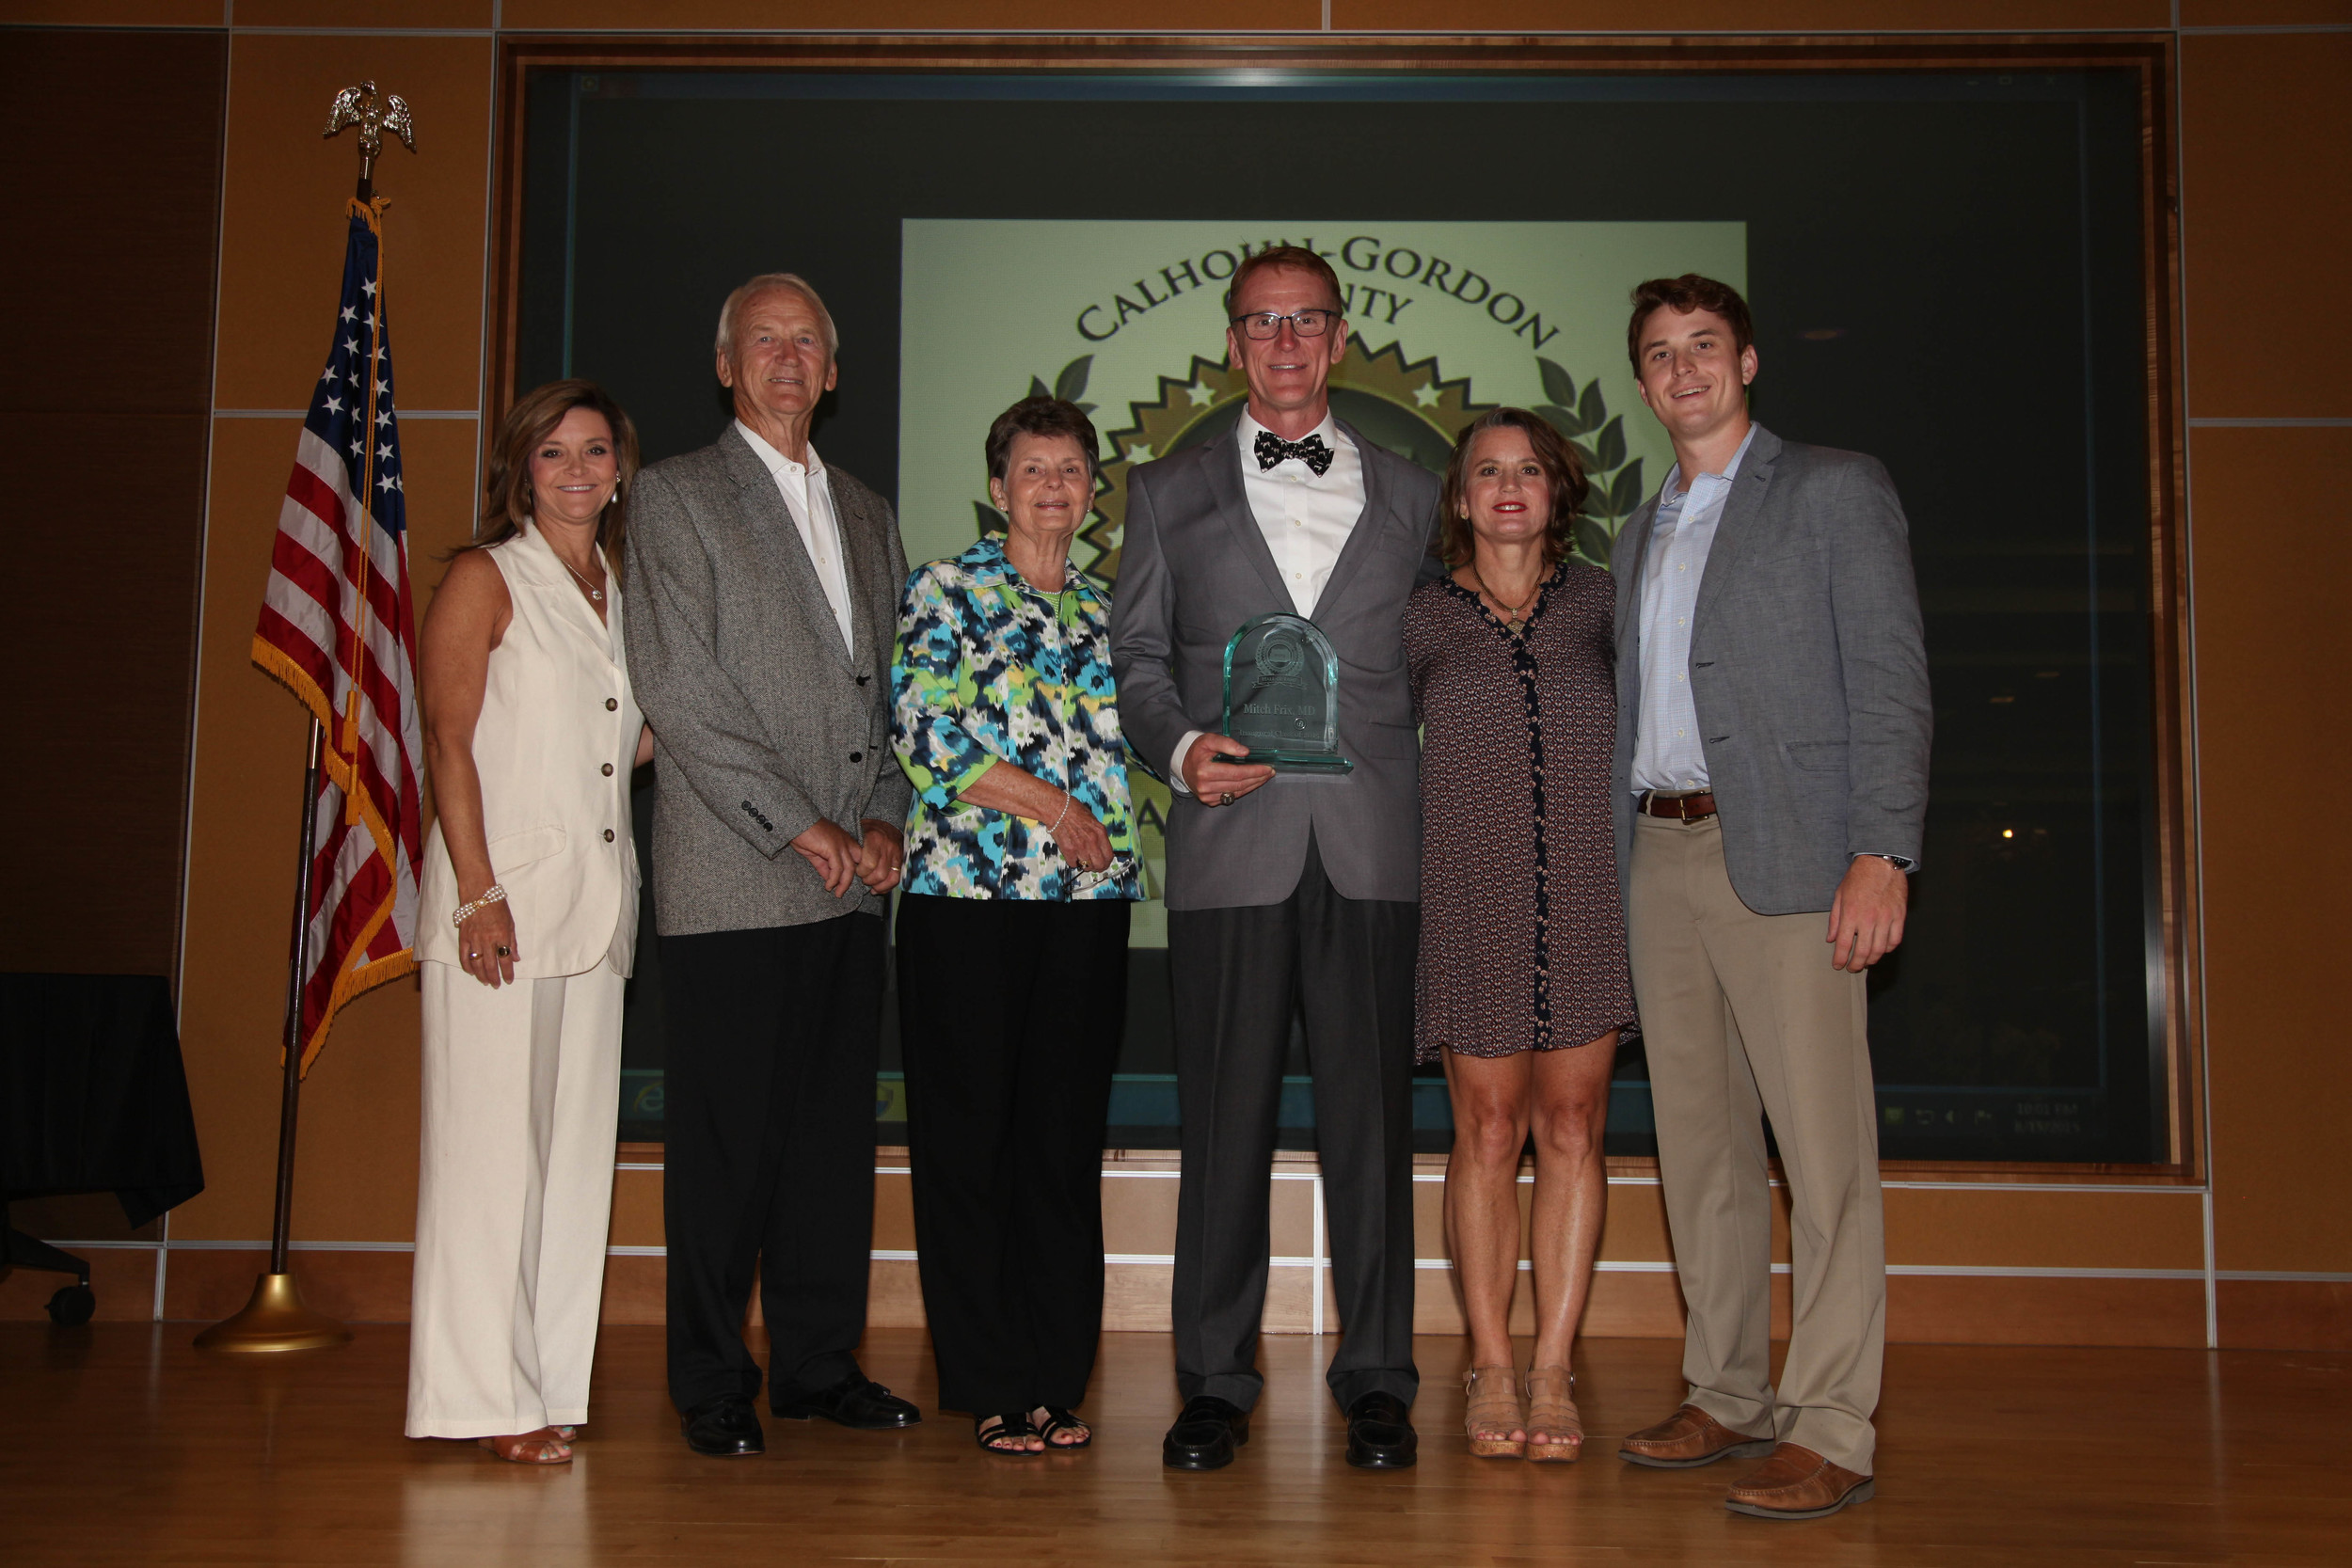 Calhoun-Gordon-County-Sports-Hall-of-Fame-2015-194.jpg